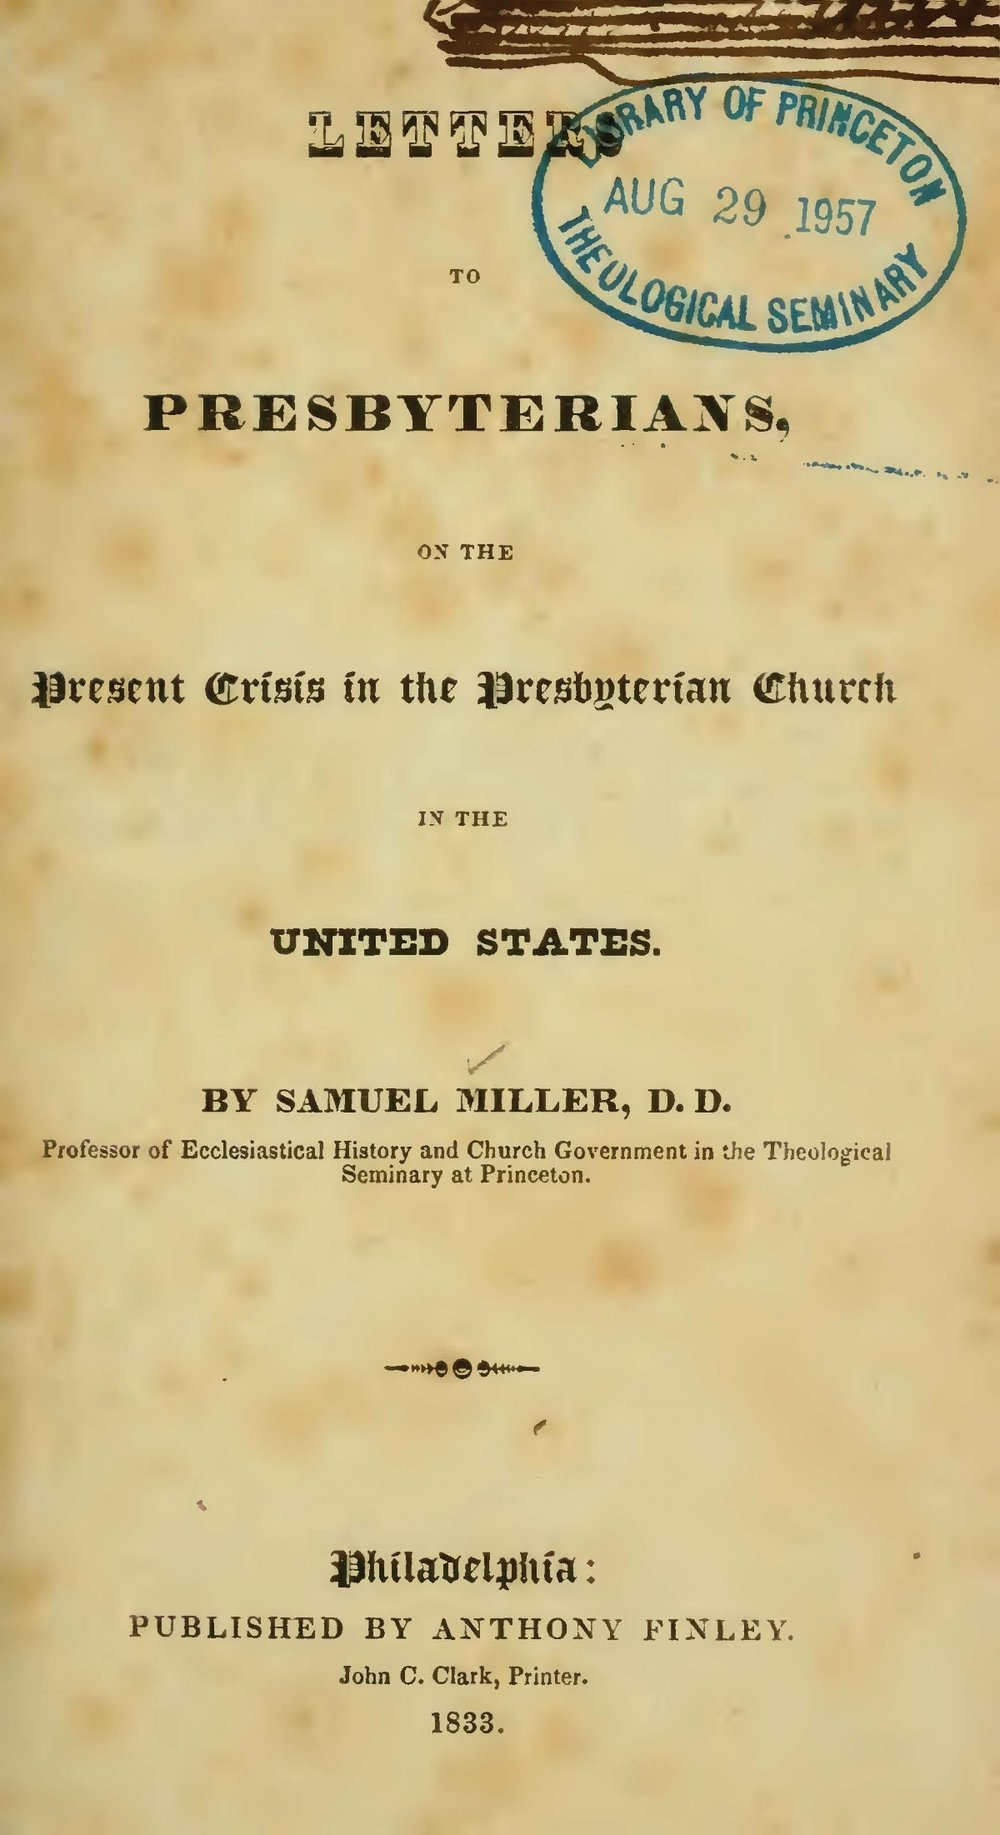 Miller, Samuel, Letters to Presbyterians, on the Present Crisis in the Presbyterian Church in the United States Title Page.jpg